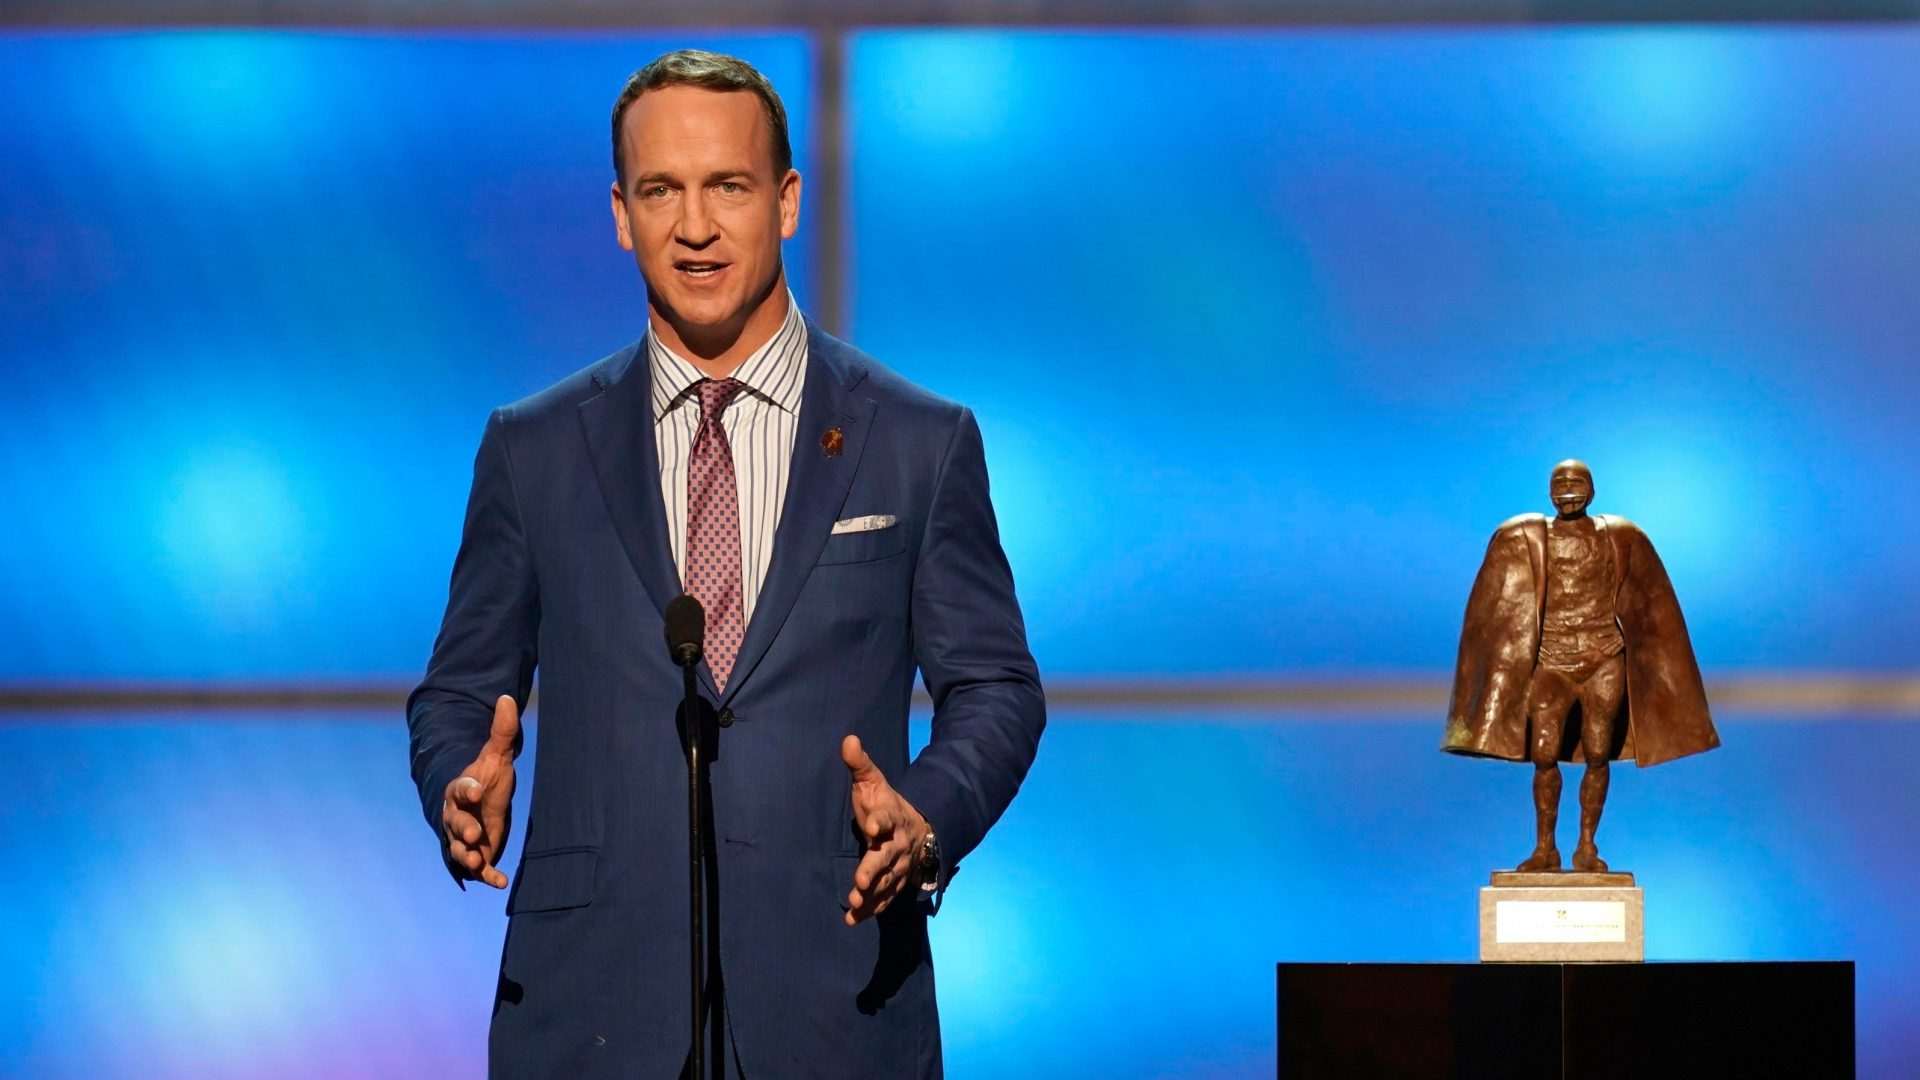 Mandatory Credit: Photo by Paul Abell/Invision/AP/Shutterstock (10081569lc)Former NFL player Peyton Manning presents the Walter Peyton NFL man of the year award at the 8th Annual NFL Honors at The Fox Theatre, in Atlanta8th Annual NFL Honors, Atlanta, USA - 02 Feb 2019.